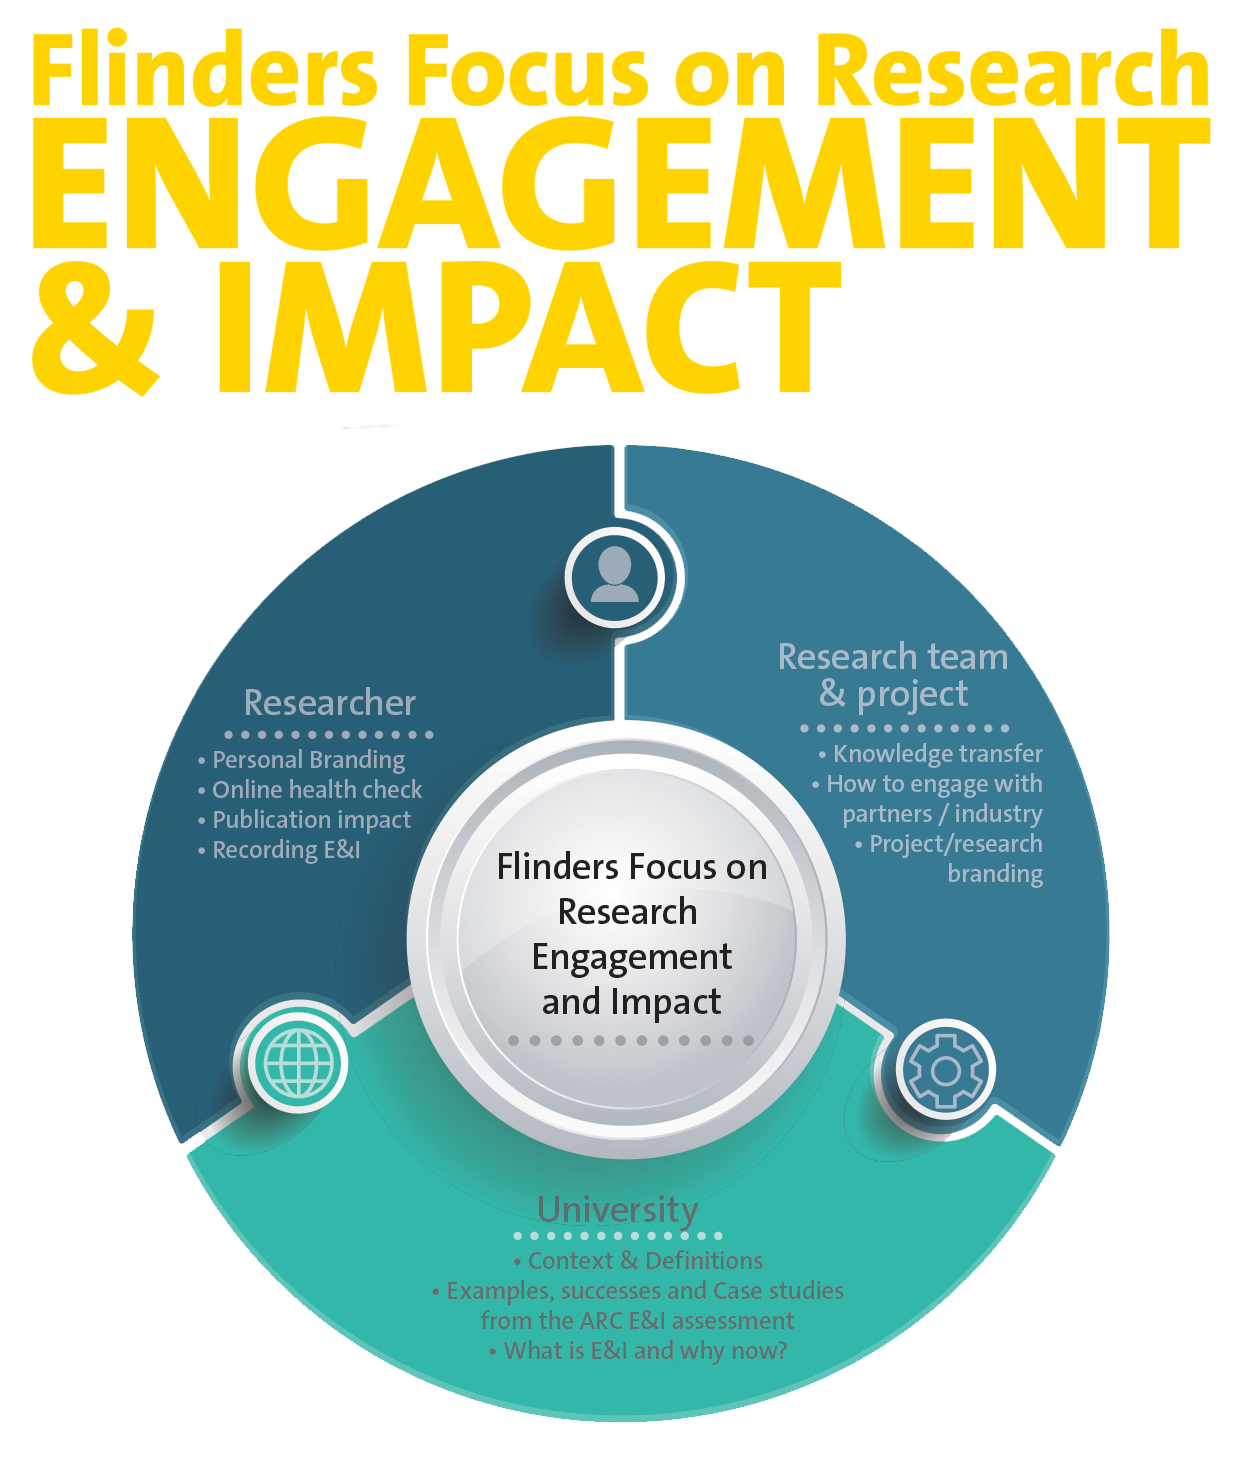 Flinders Focus on Research Engagement and Impact